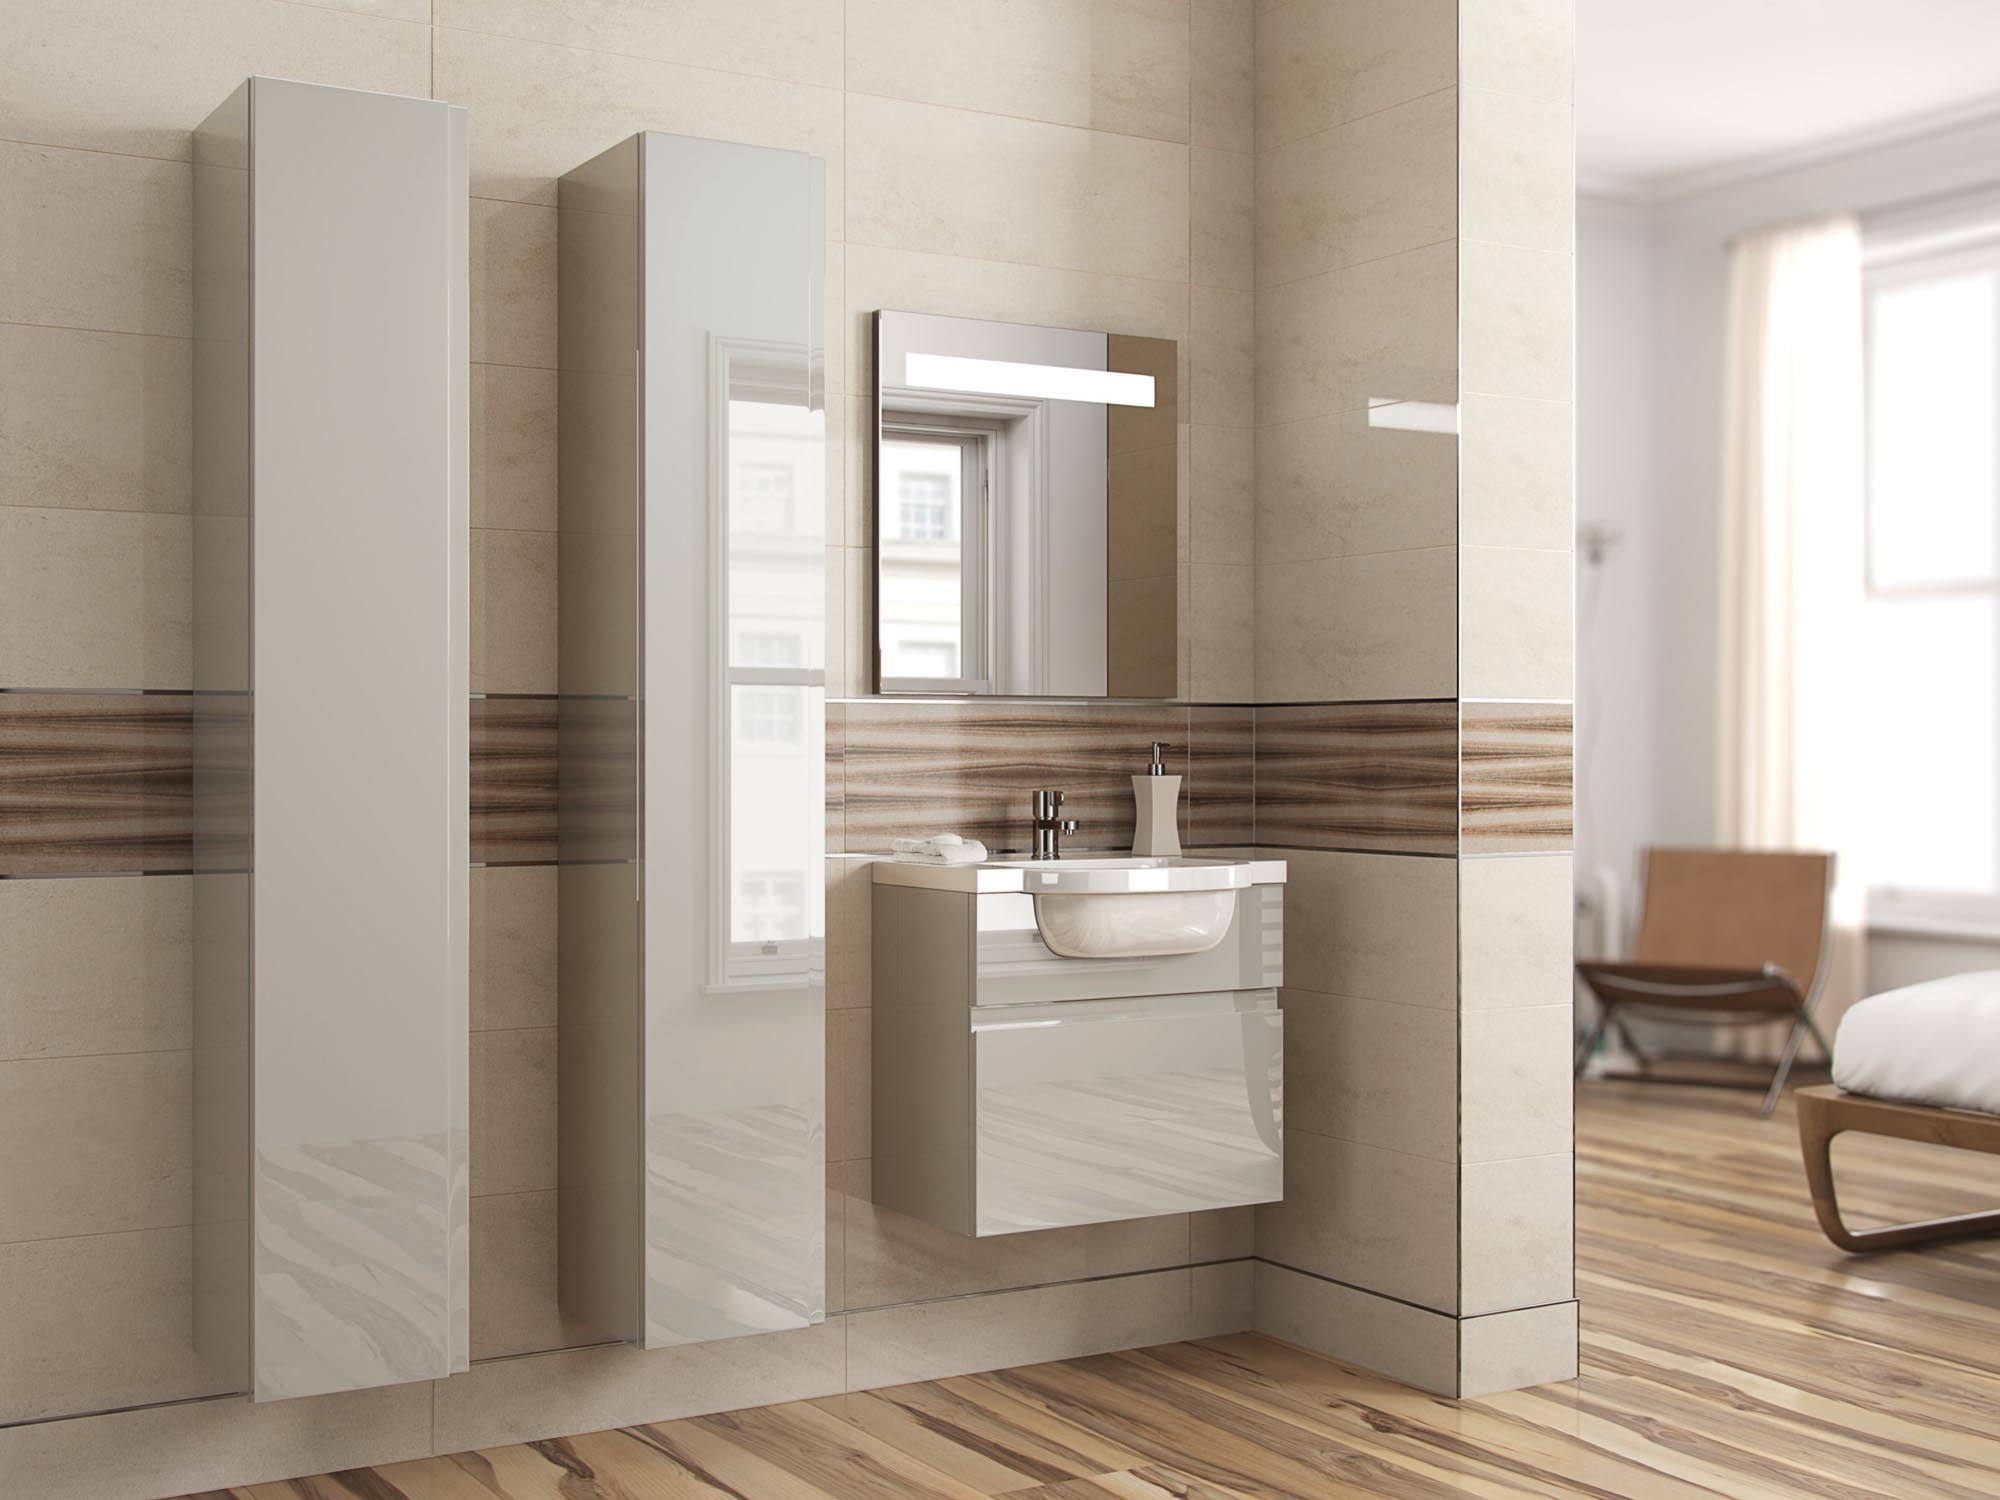 Bathrooms Hilton Installations - Integra furniture